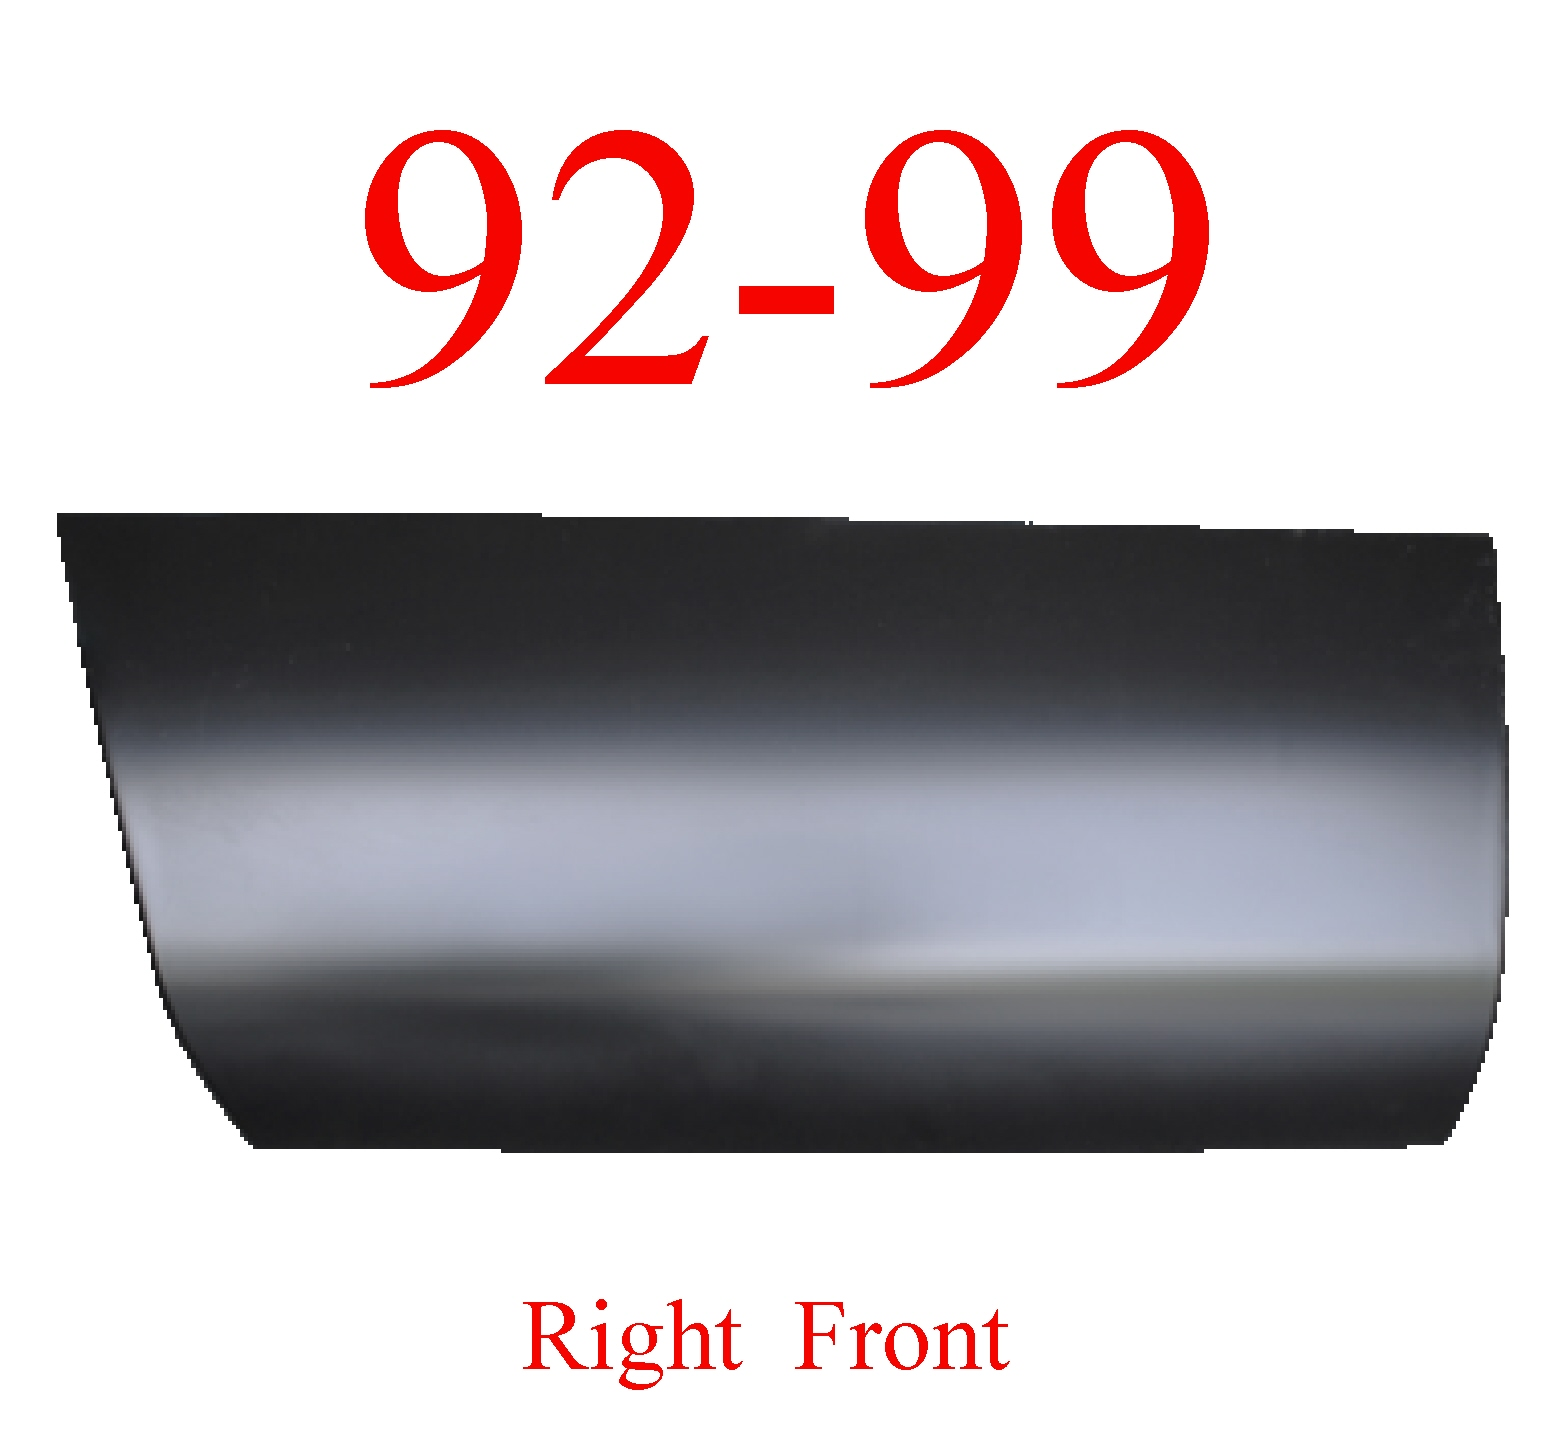 92 99 Tahoe Yukon Right Front Quarter Panel, 2 Door